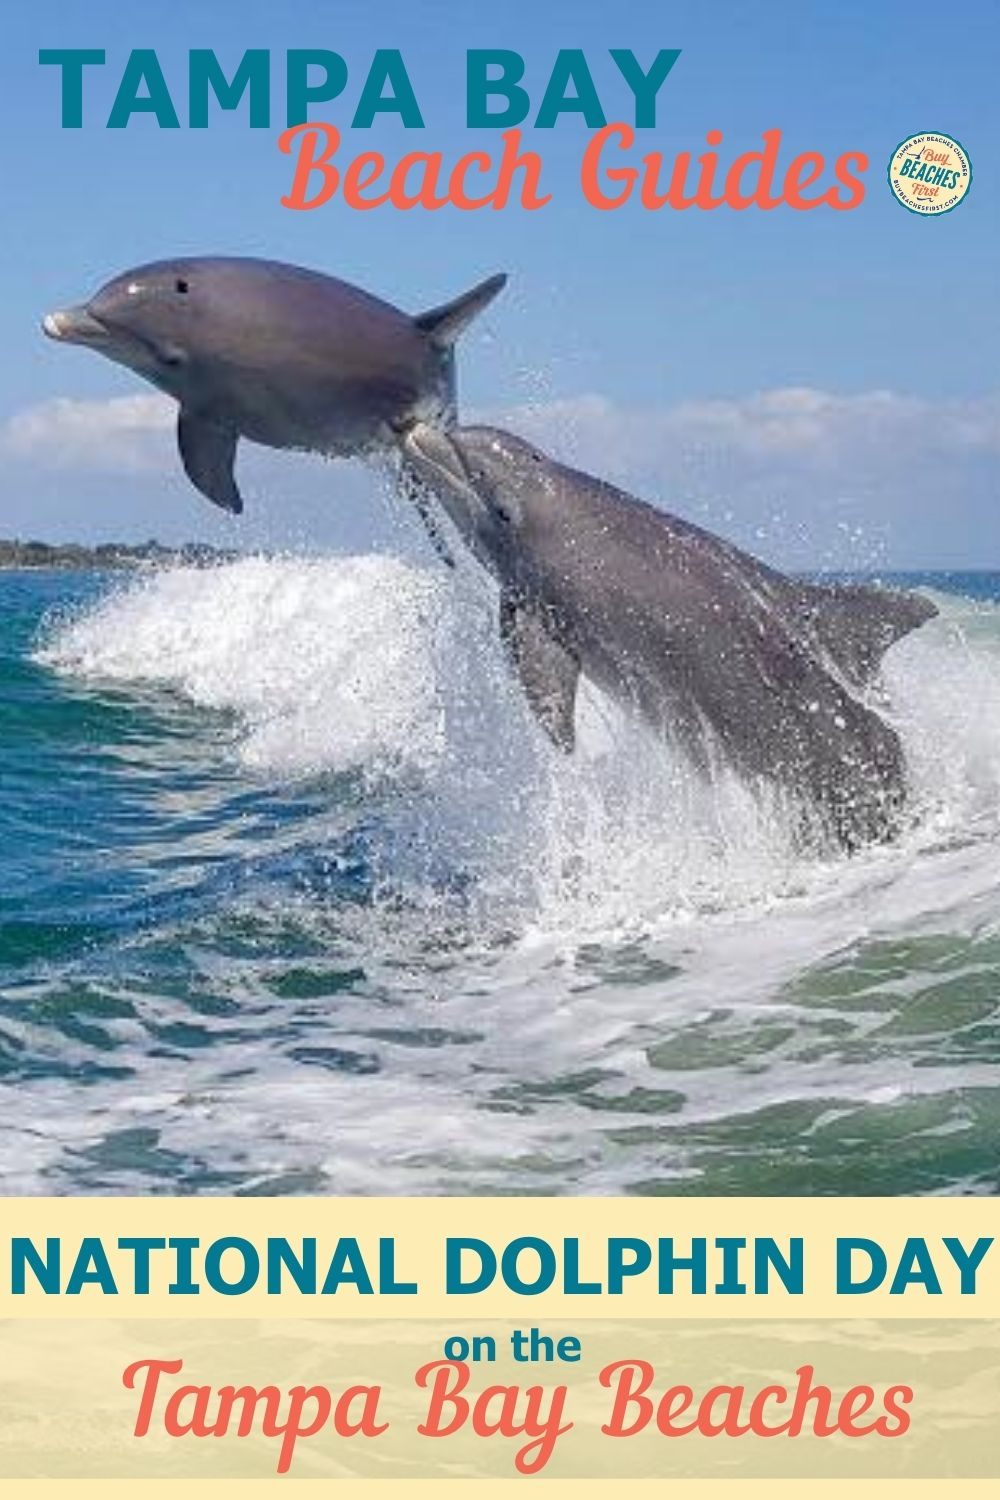 Image for 7 Ways to Celebrate National Dolphin Day on the Tampa Bay Beaches